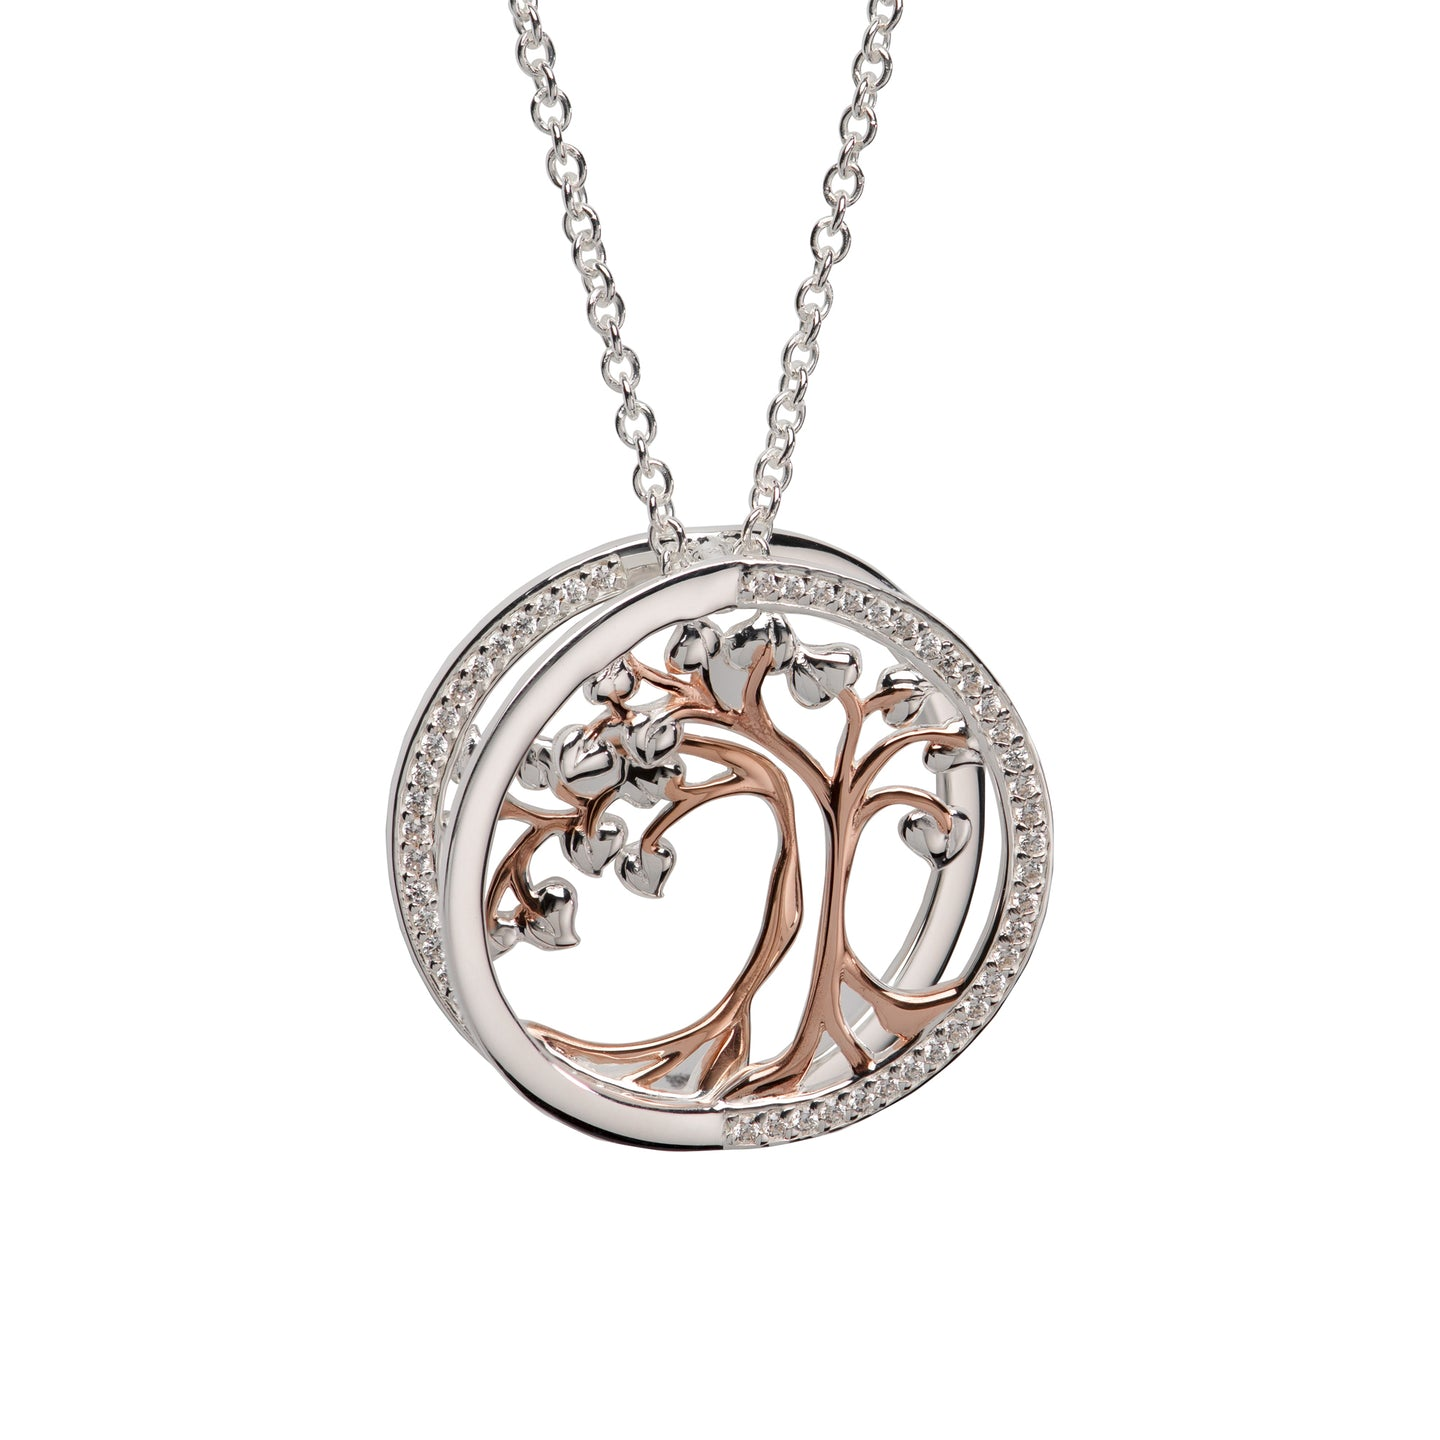 3D Tree of Life Pendant with Chain MK-781